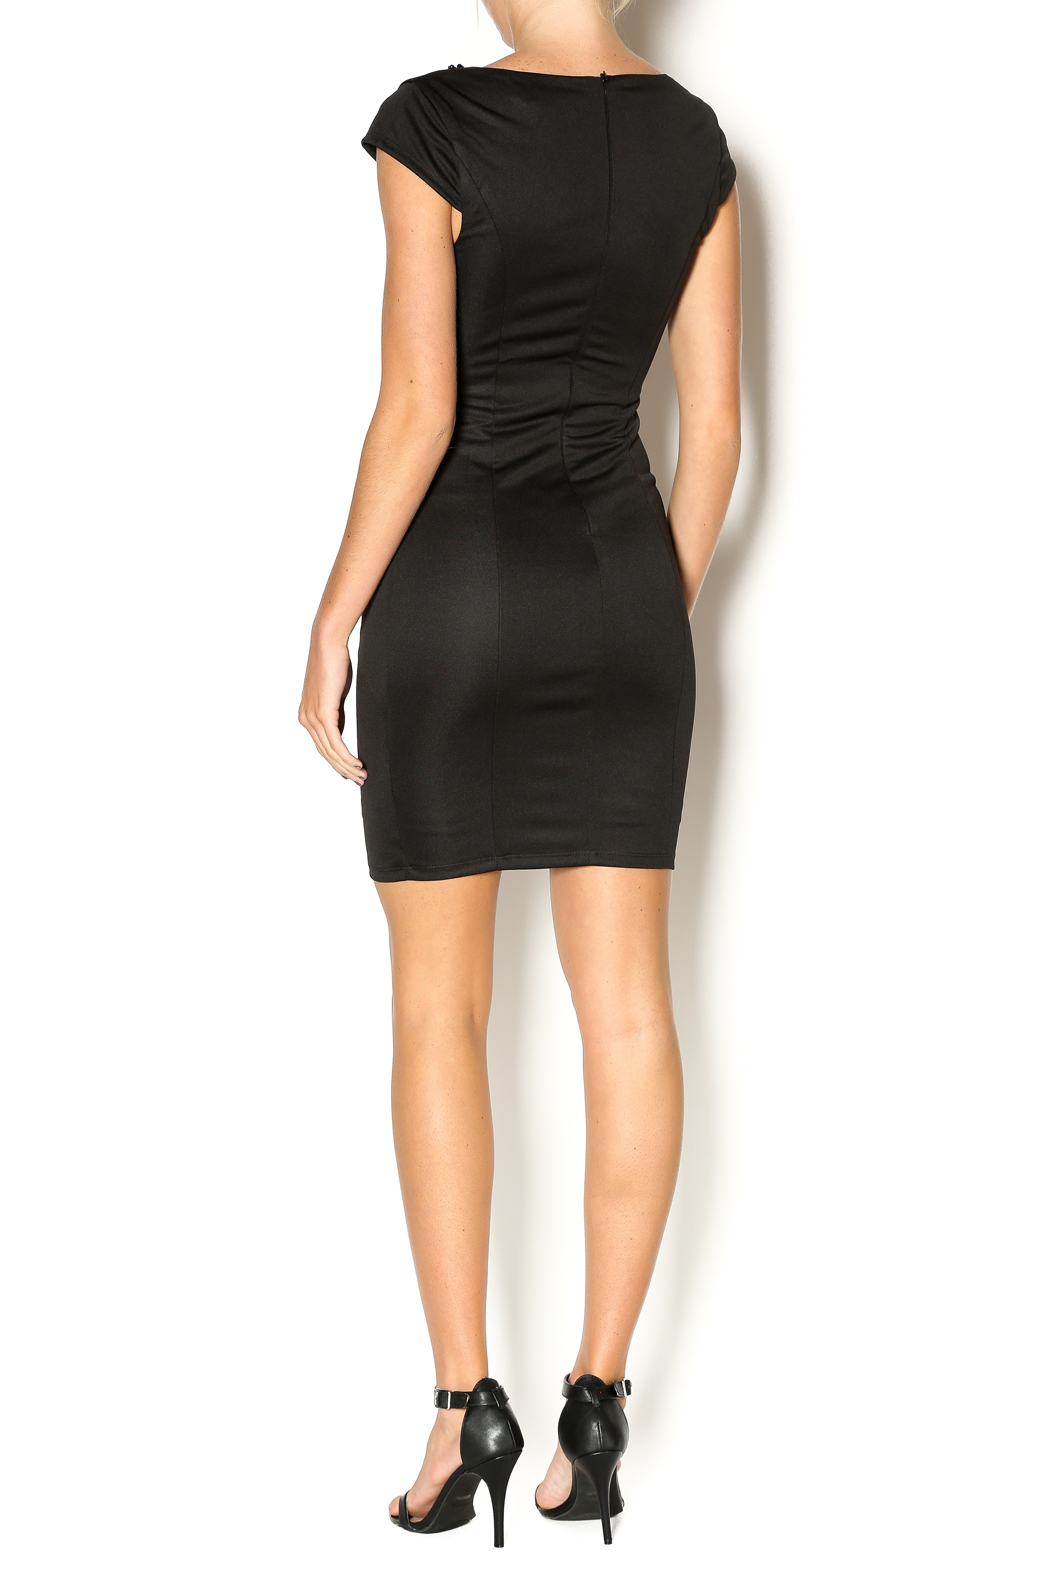 Abby & Taylor Sweetheart Neckline Dress - Side Cropped Image